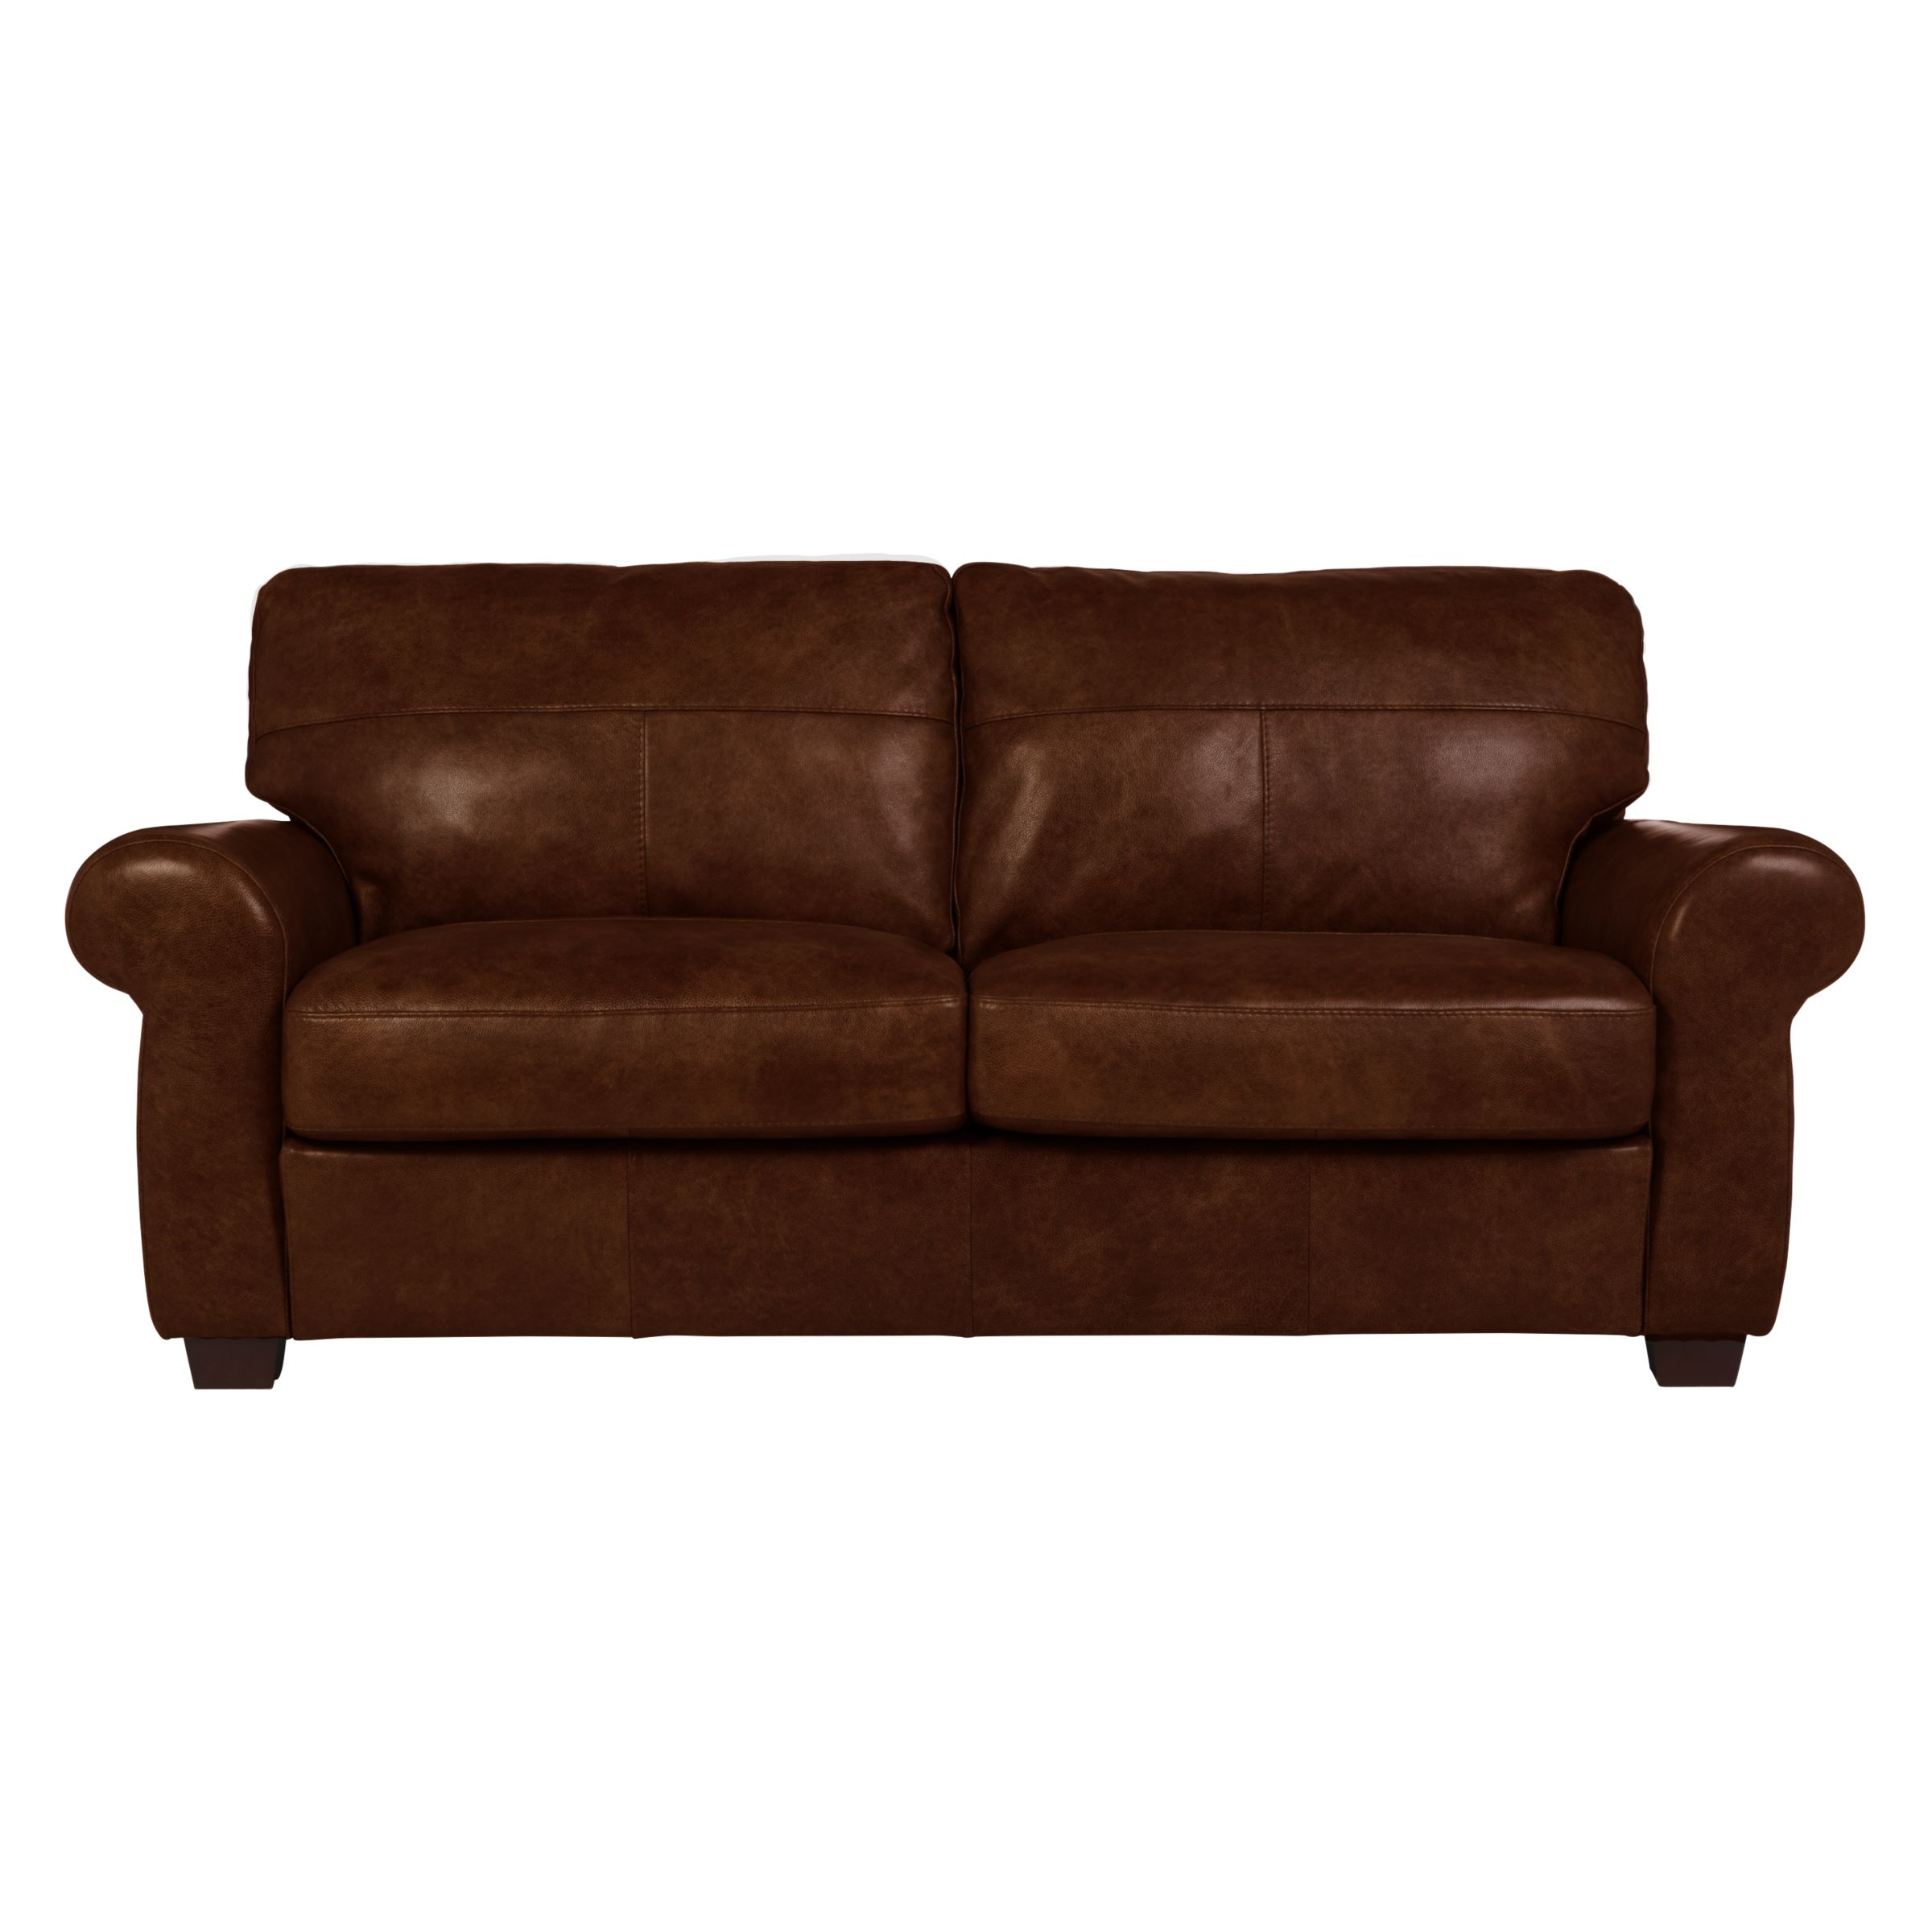 - John Lewis & Partners Hampstead Large 3 Seater Leather Sofa At